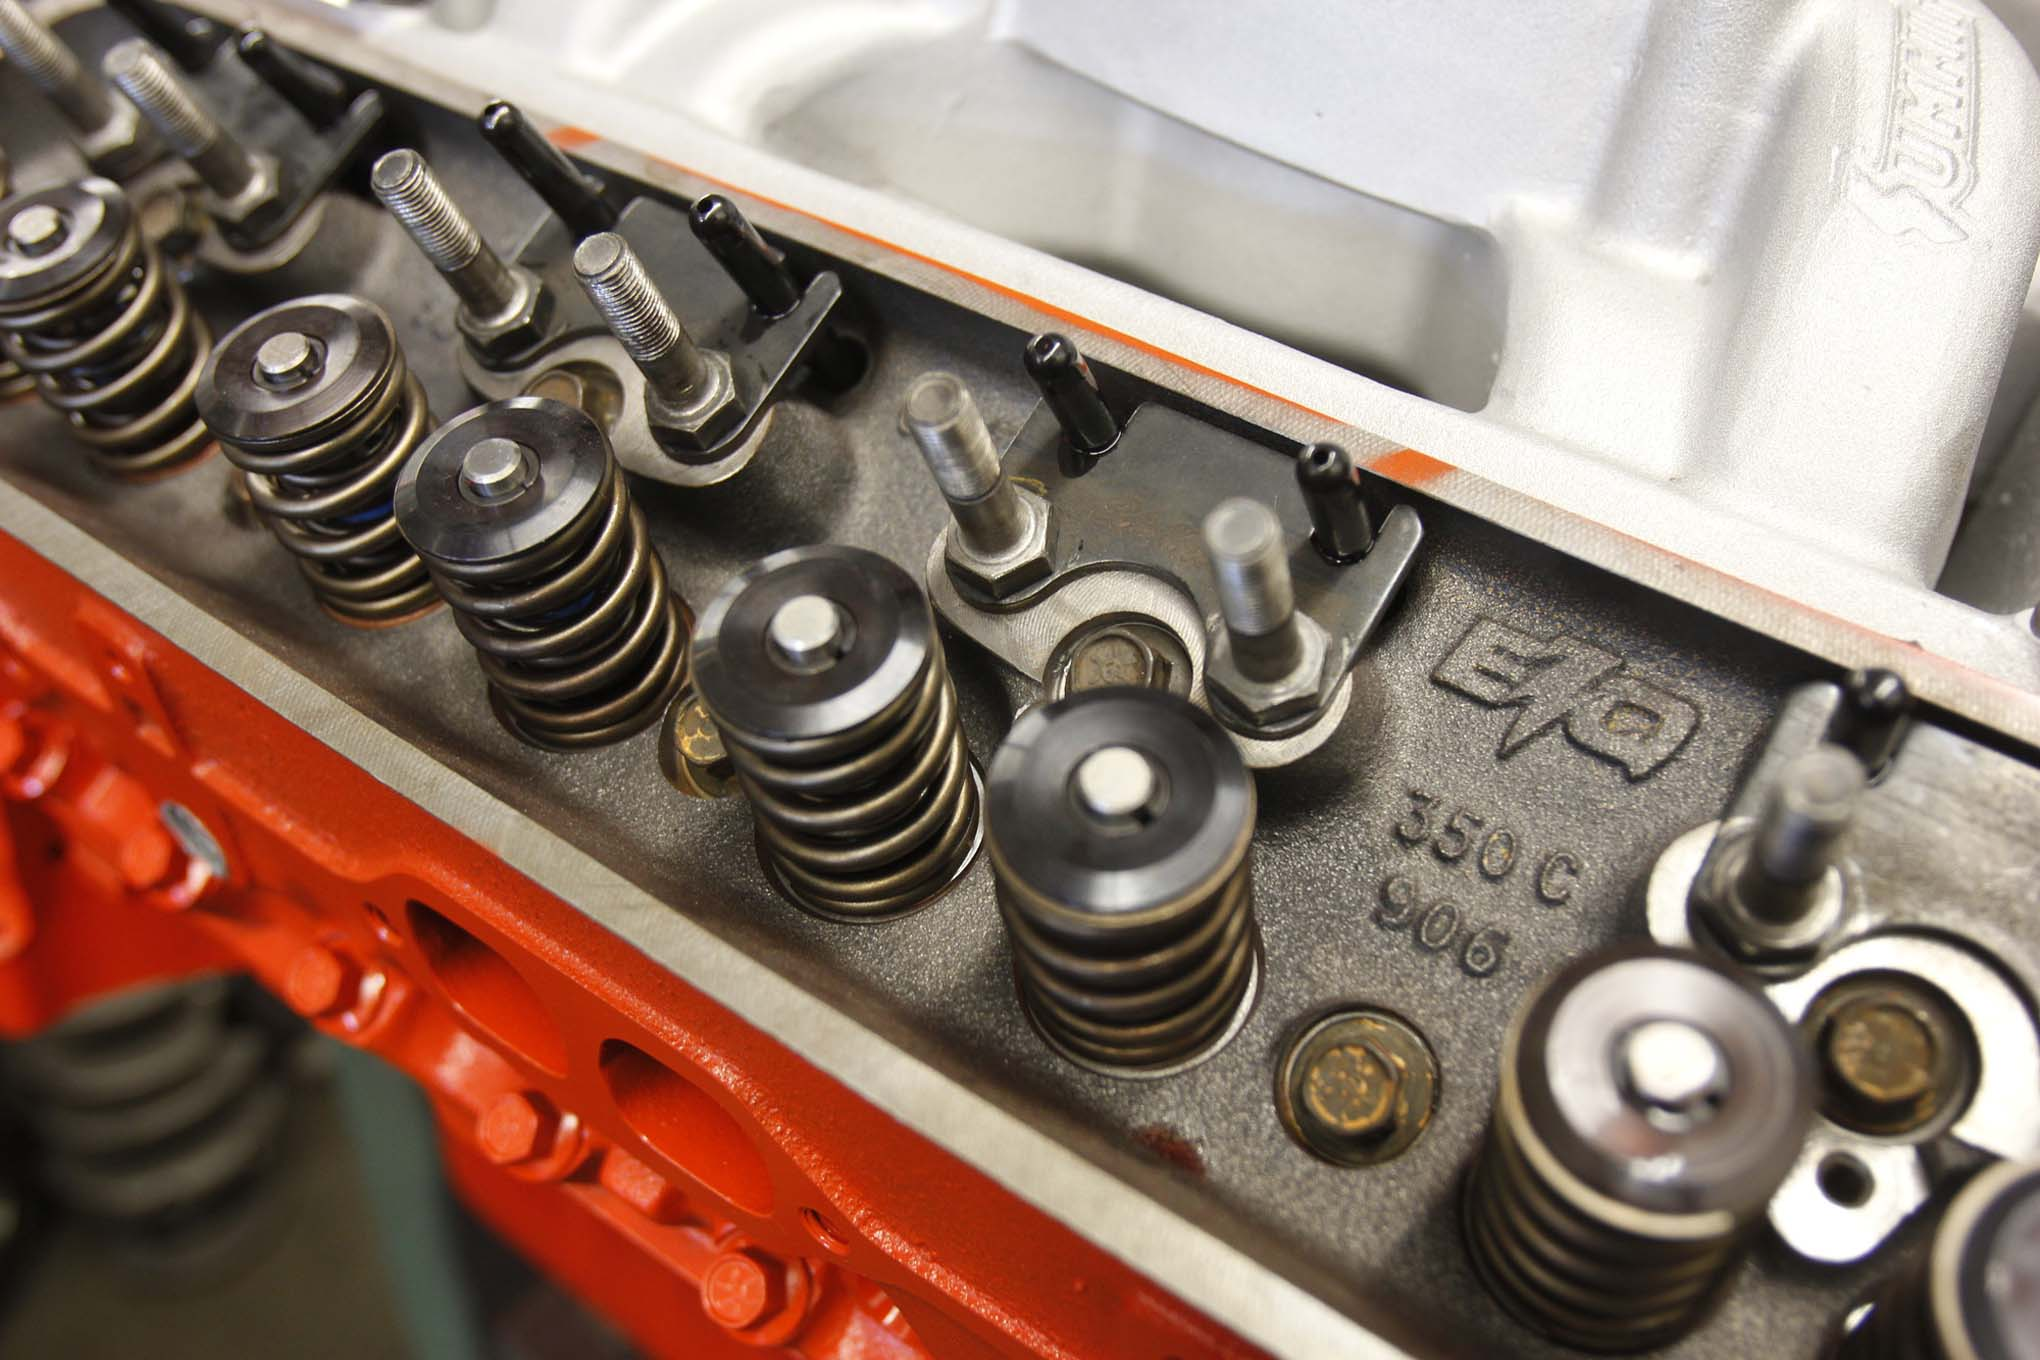 We took things a step further by changing the springs for even more lift. This let us slide in a Trick Flow's hydraulic roller cam with 230/234 degrees duration at 0.050 and 0.530-/0.540-inch valve lift with 1.5:1 ratio rocker arms. Compare those specs to the cam we used in our previous build: 196/206 degrees duration at 0.050 and 0.431/0.451-inch valve lift.